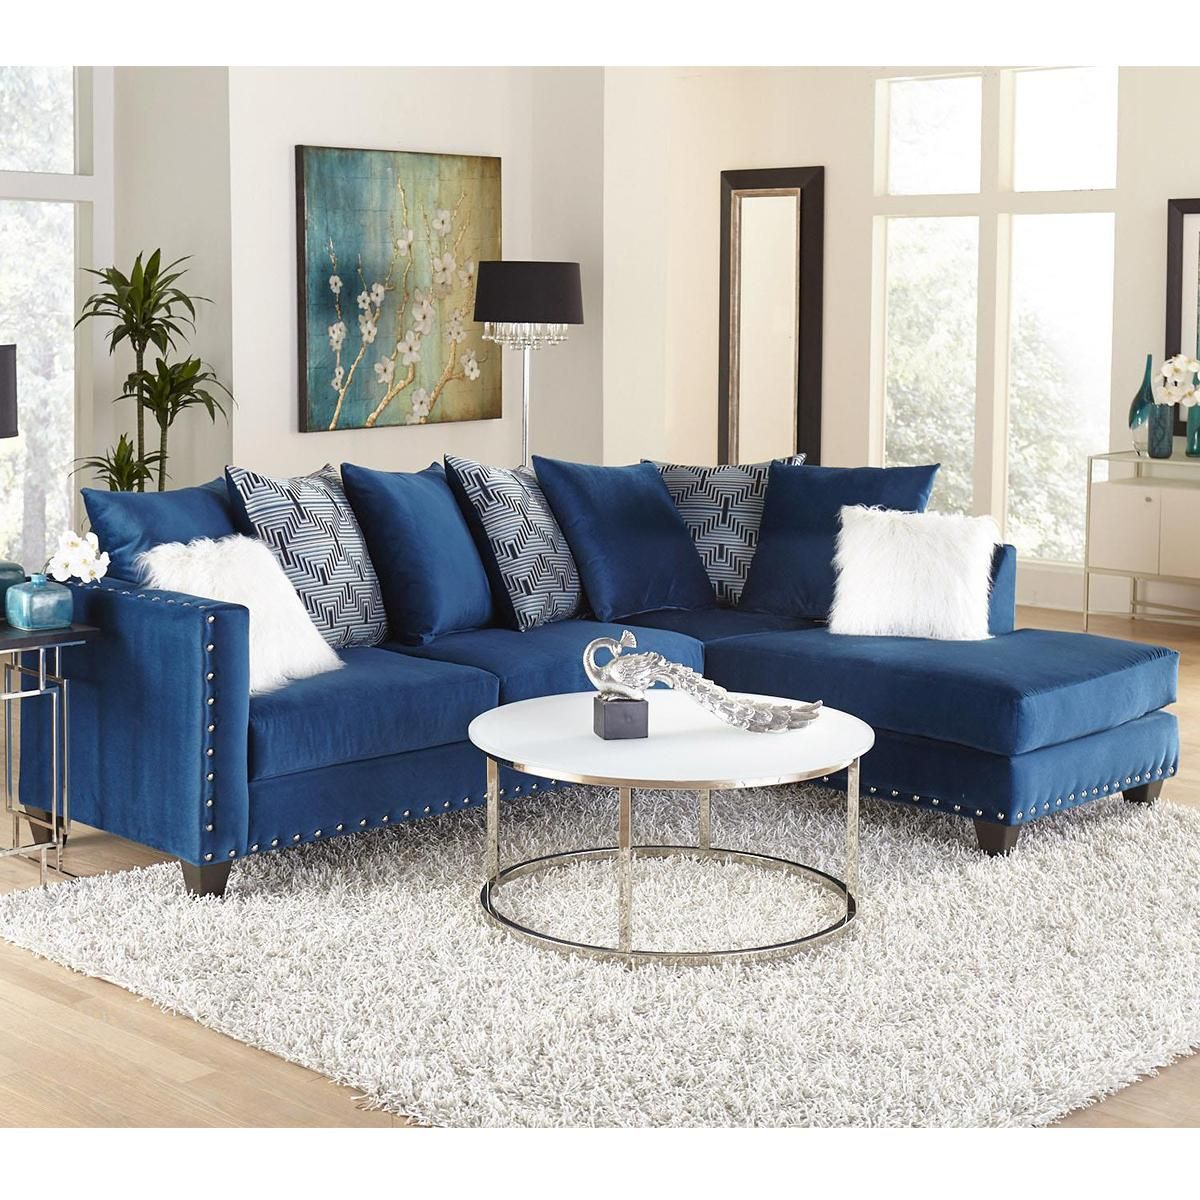 Delta 2 Piece Sectional In Melon Sapphire Nebraska Furniture Mart Couches Living Room Furniture Blue Living Room #sectional #couch #living #room